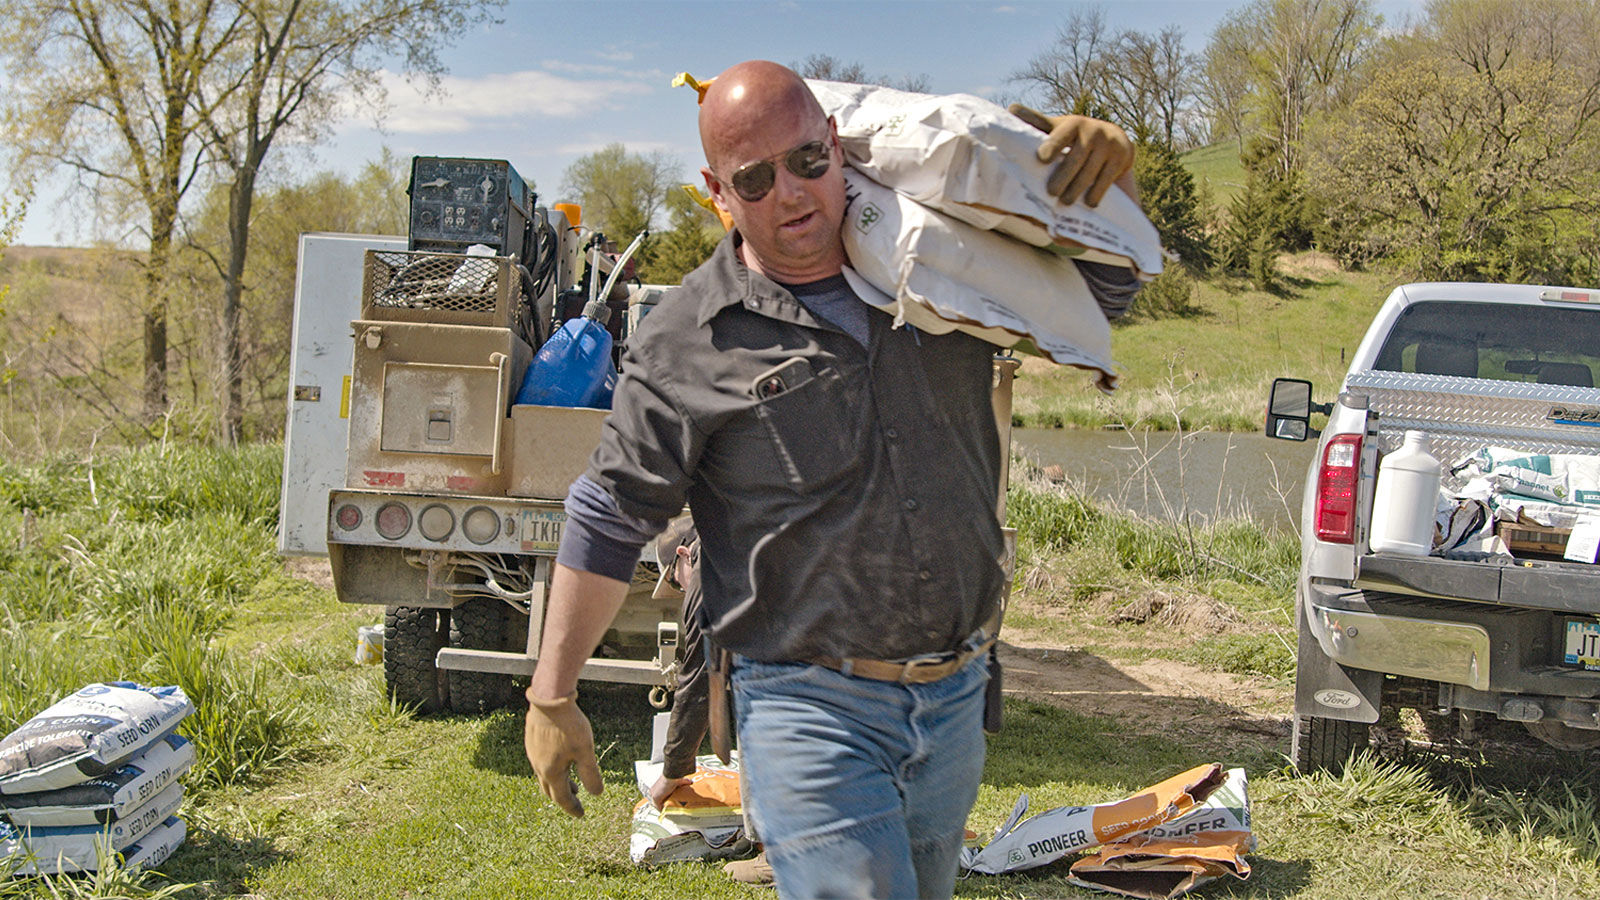 Kelly Garrett carries supplies on his 7,000-acre farm in Iowa. He has made nearly $150,000 partnering with corporations to offset planet-warming emissions by capturing additional carbon in his farm's soil.